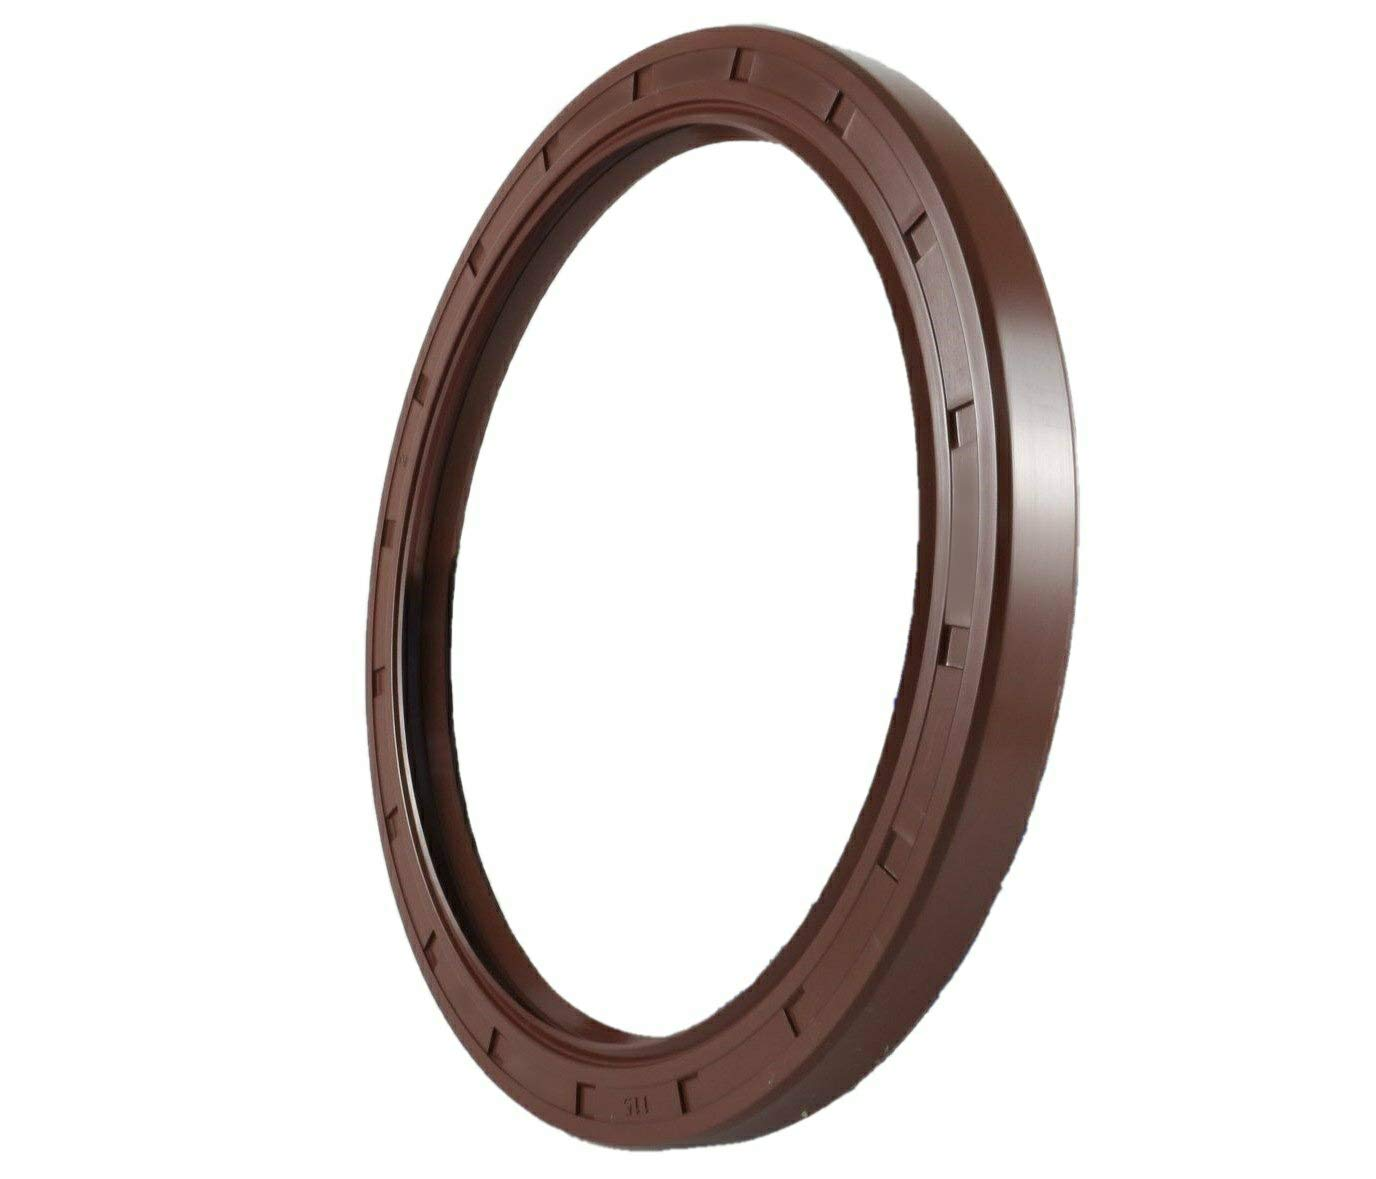 EAI VITON Oil Seal 115mm 70% OFF Outlet X 145mm 6 14mm PCS Lip Easy-to-use TC w Double